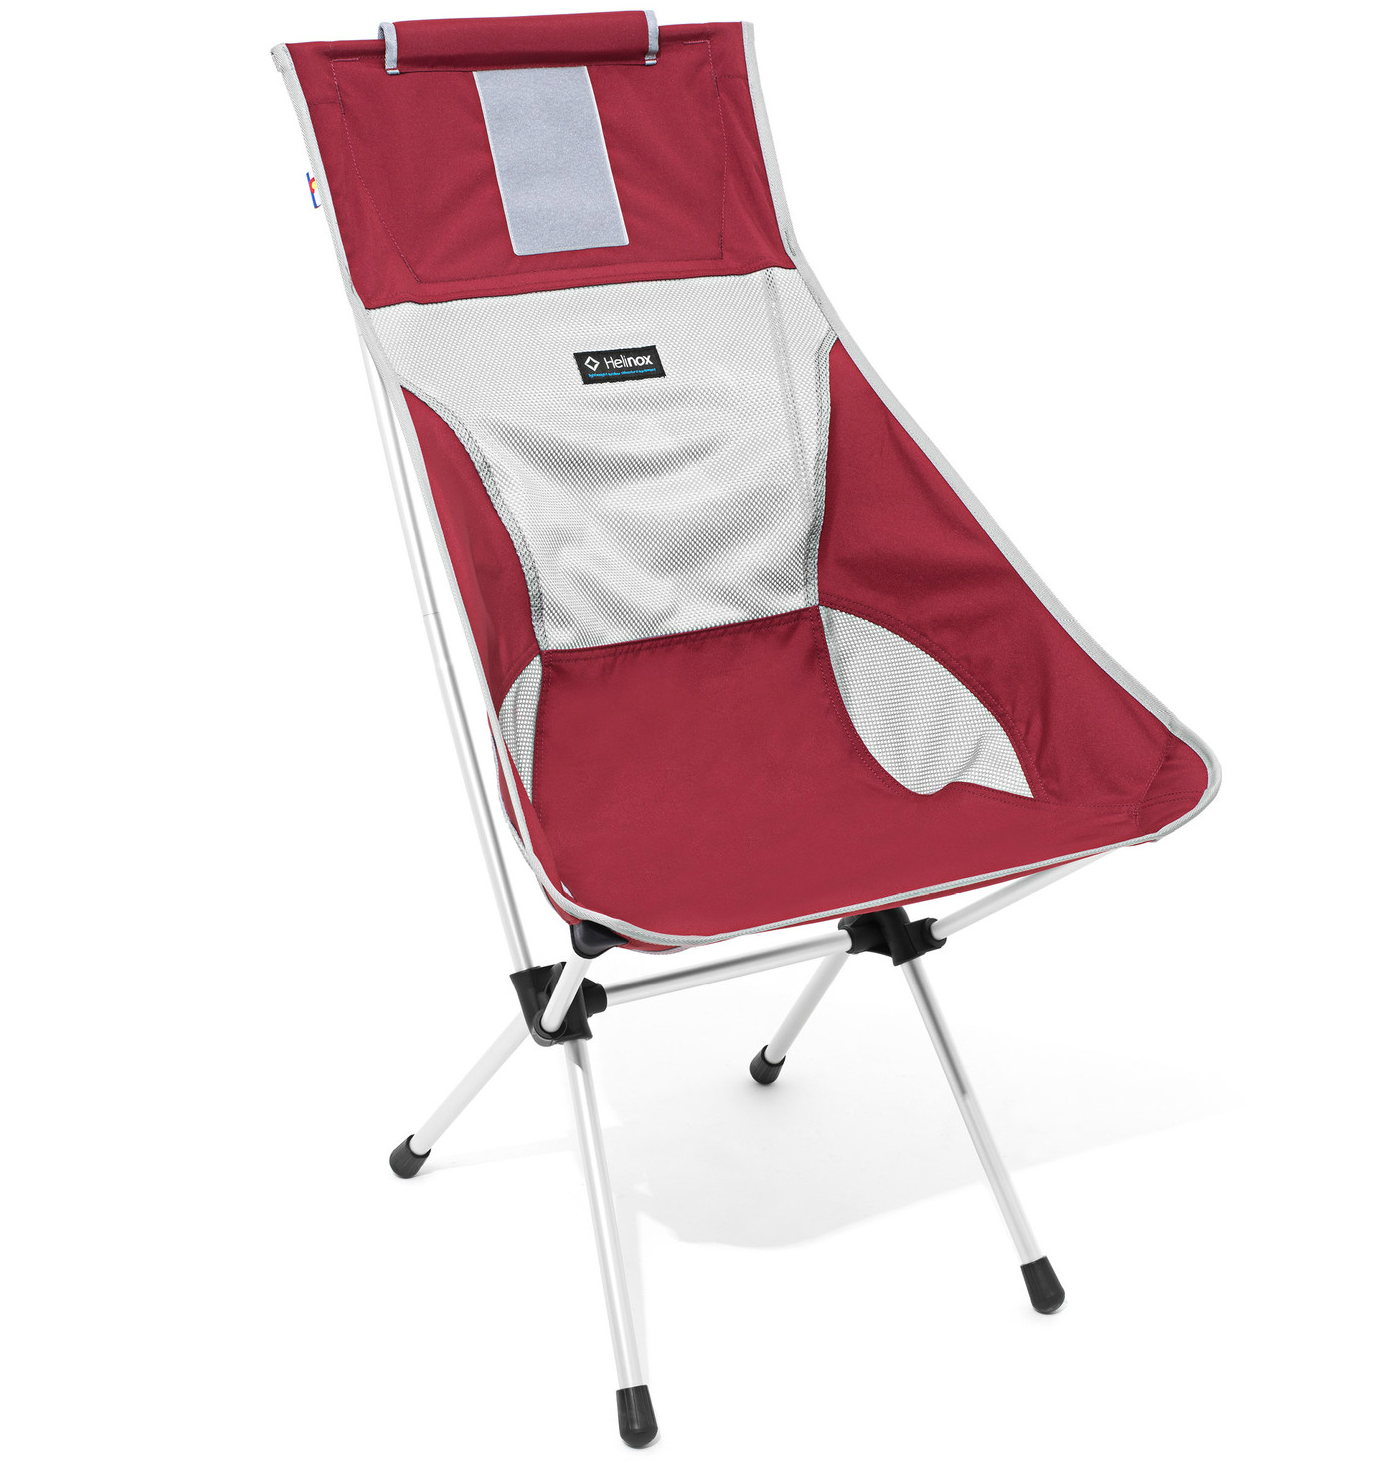 Most Comfortable Camping Chair Helinox Sunset Camping Chair